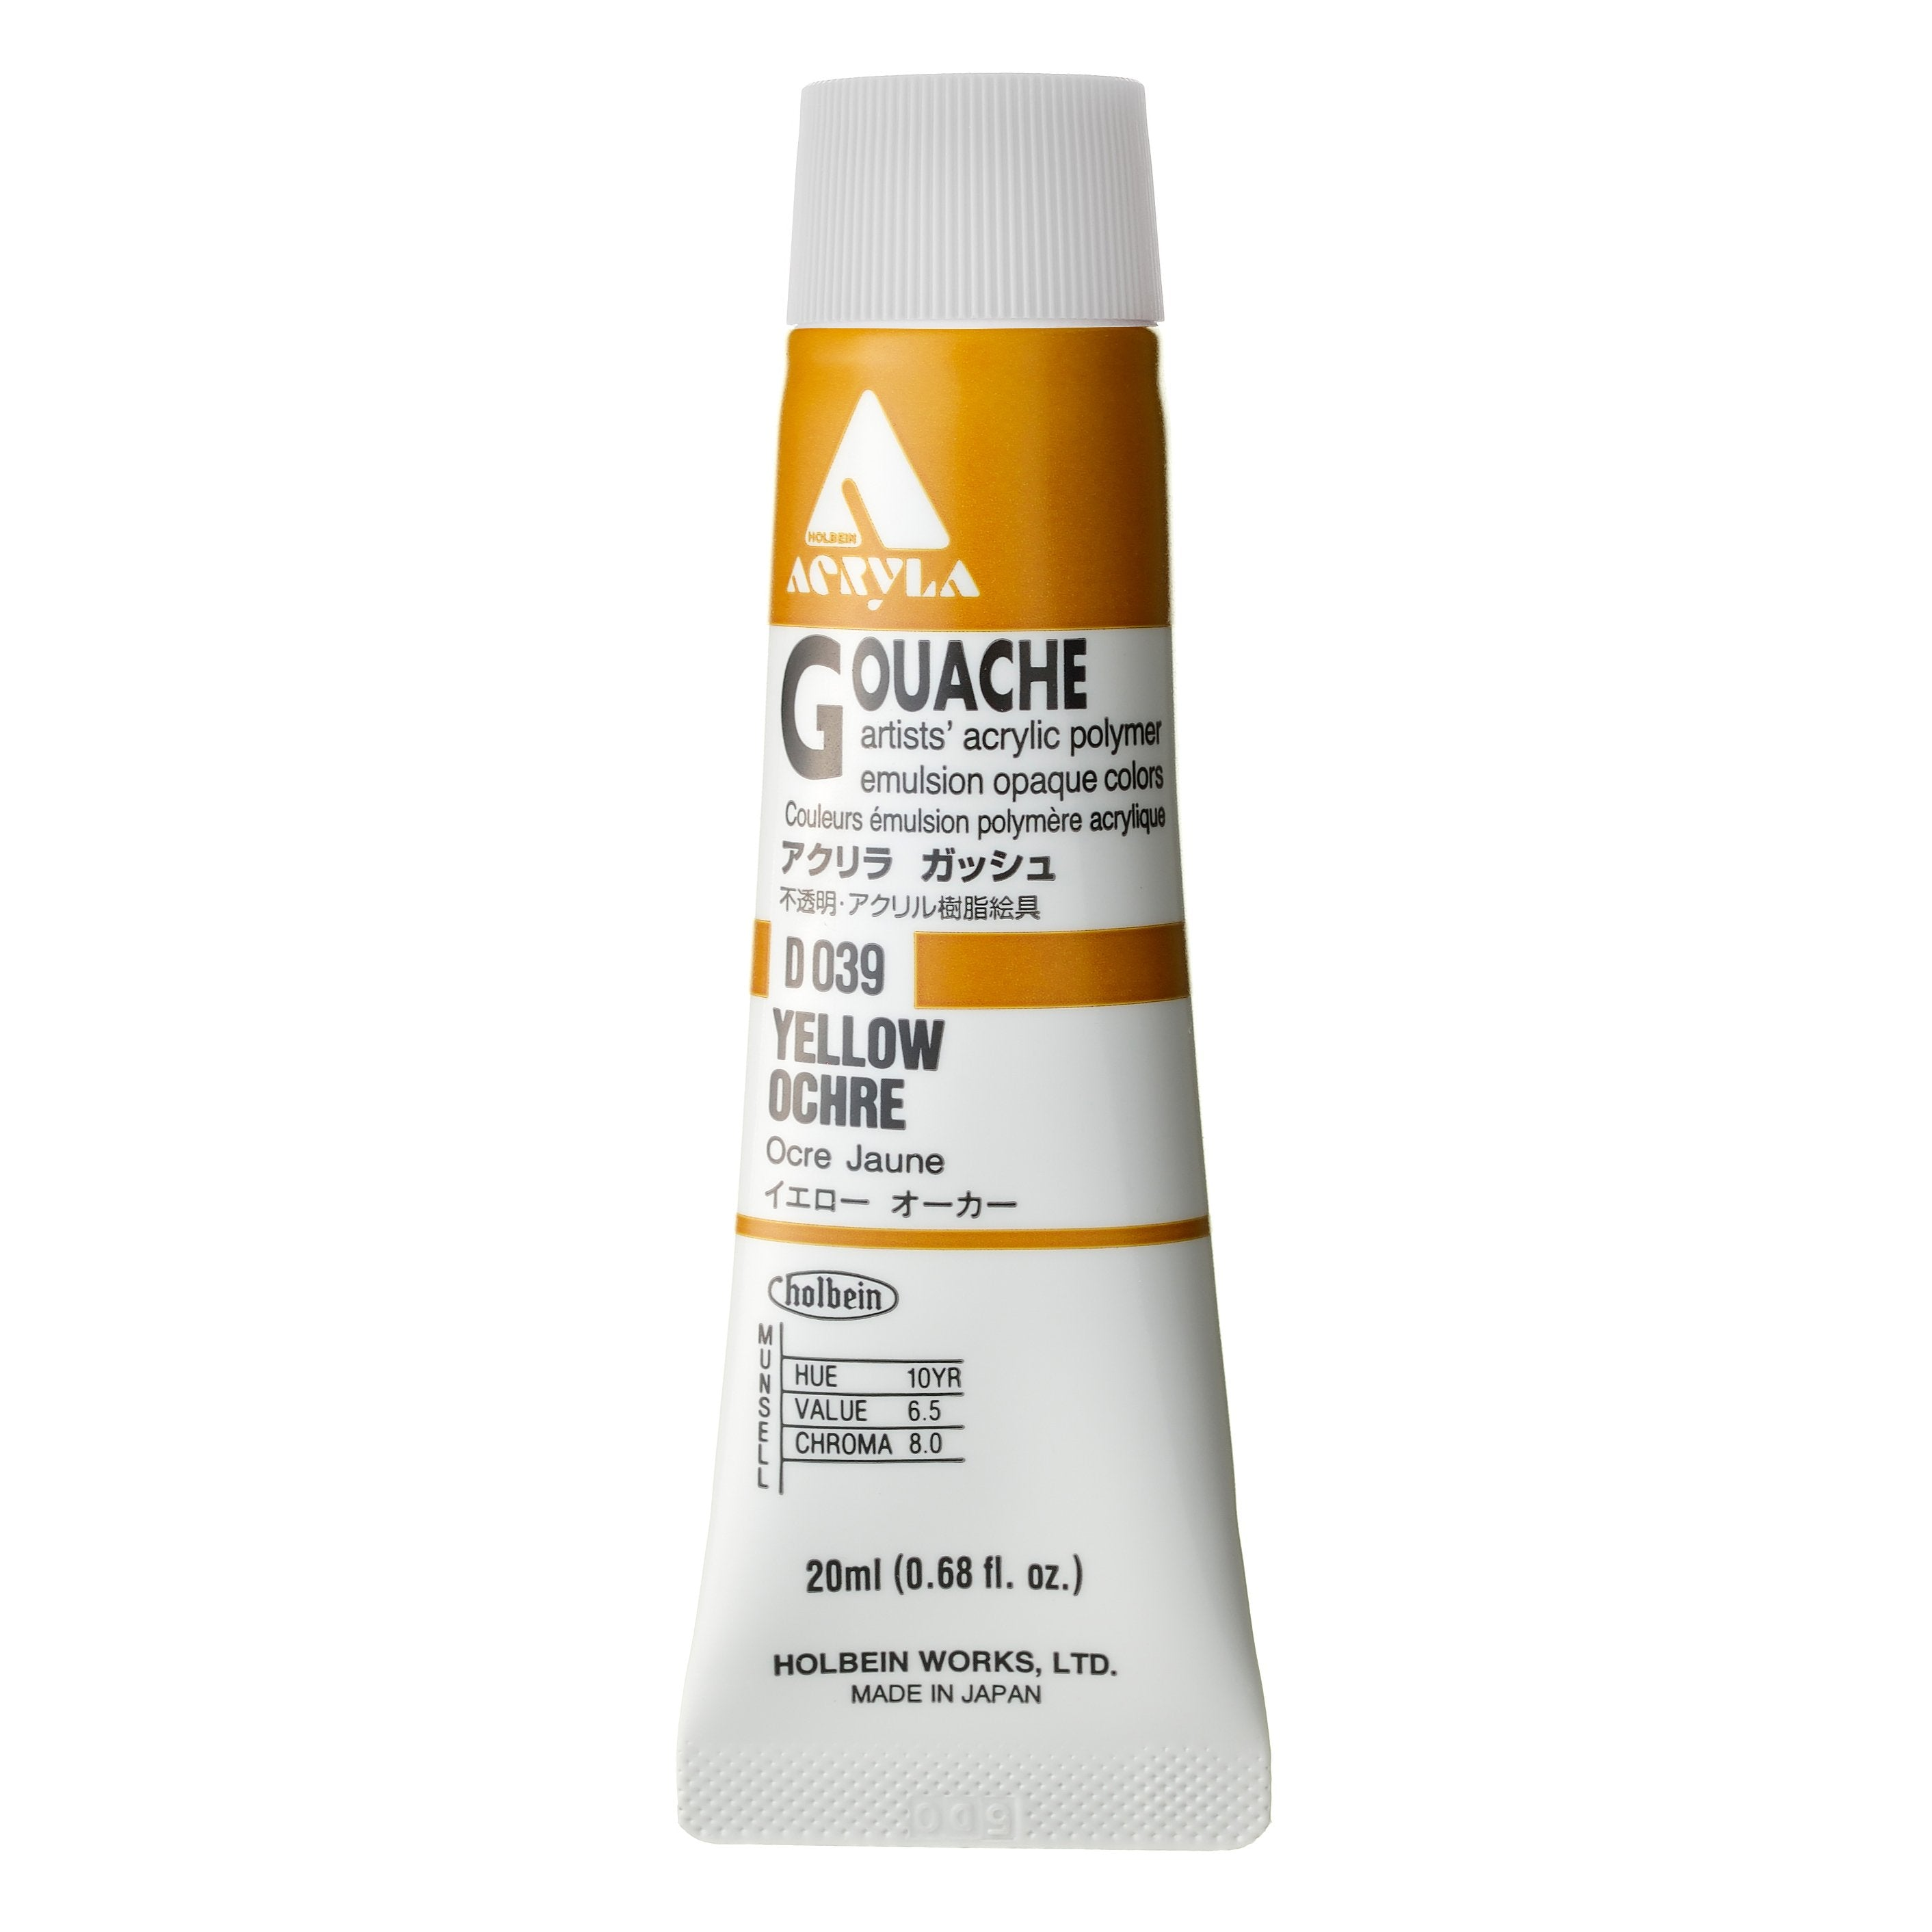 Holbein Acryla Gouache, 20ml, Yellow Ochre